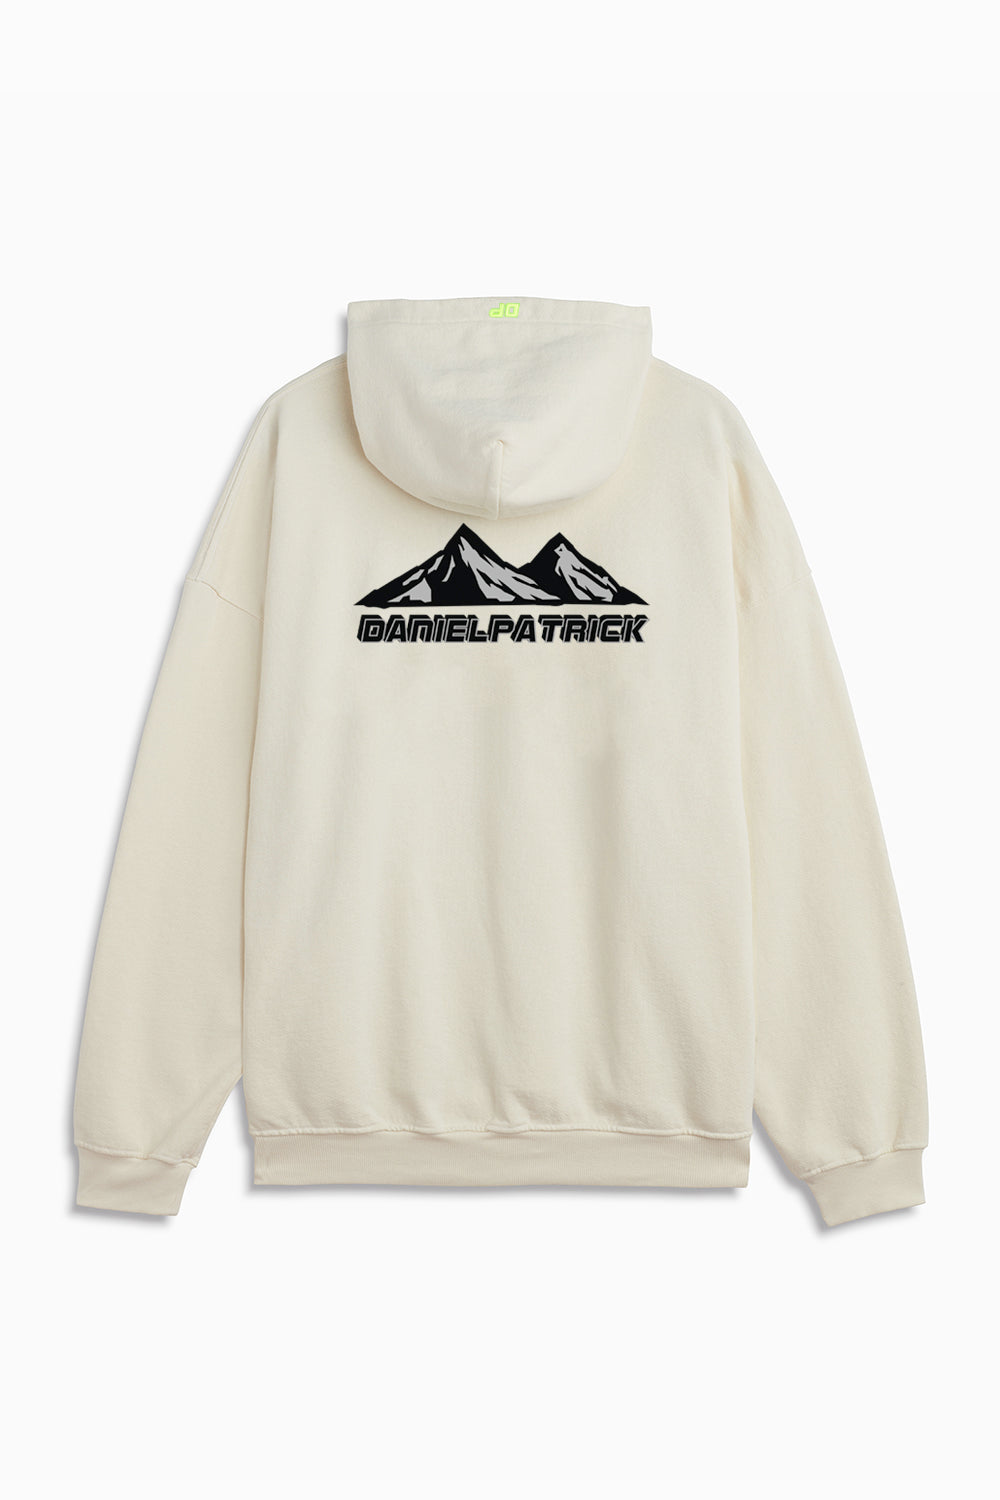 moving mountains hoodie in natural by daniel patrick